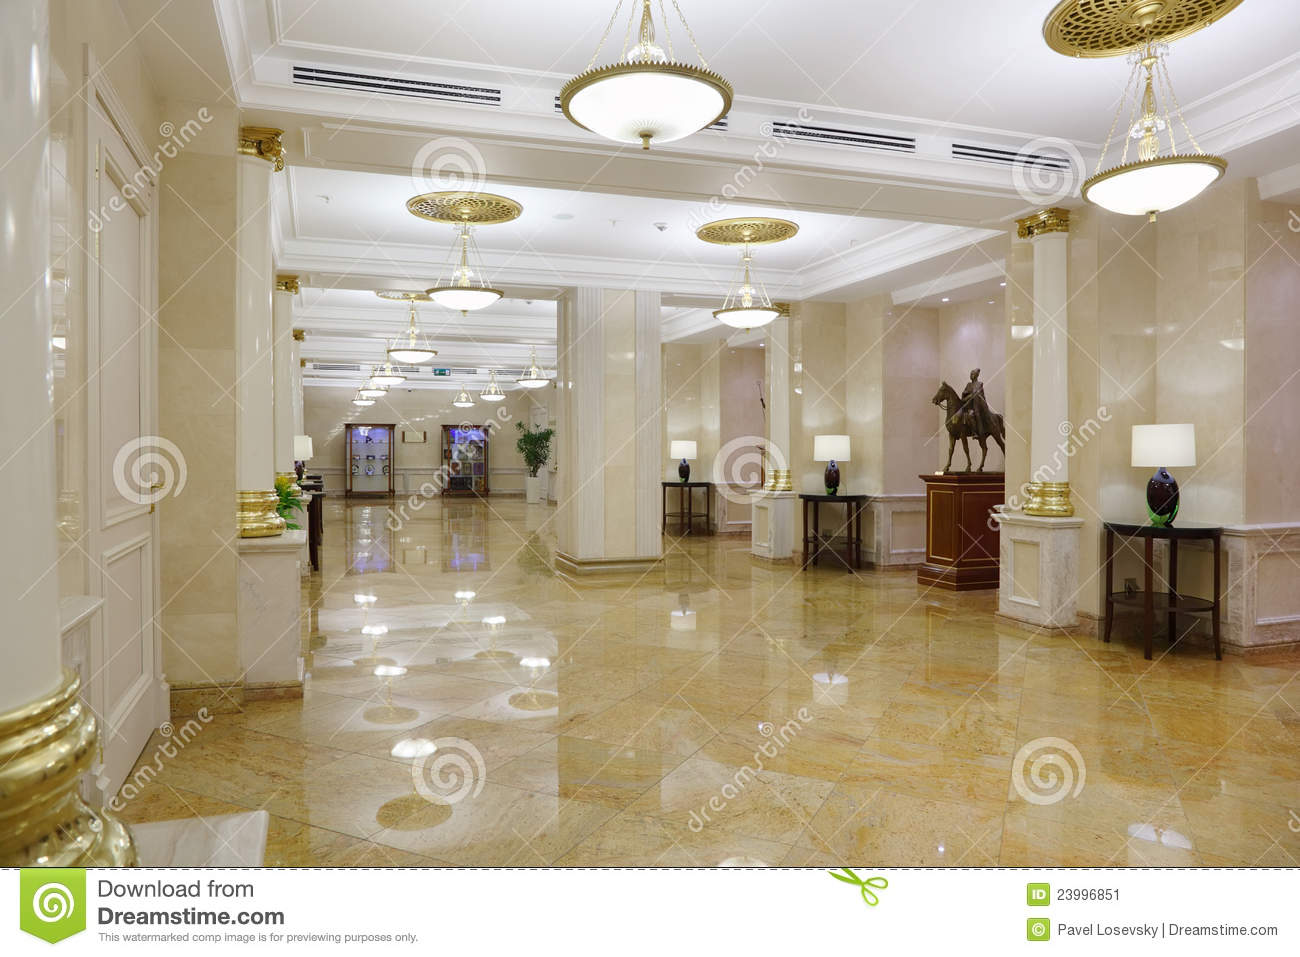 Light hall with marble floor in hotel ukraine editorial for Design hotel road kiev